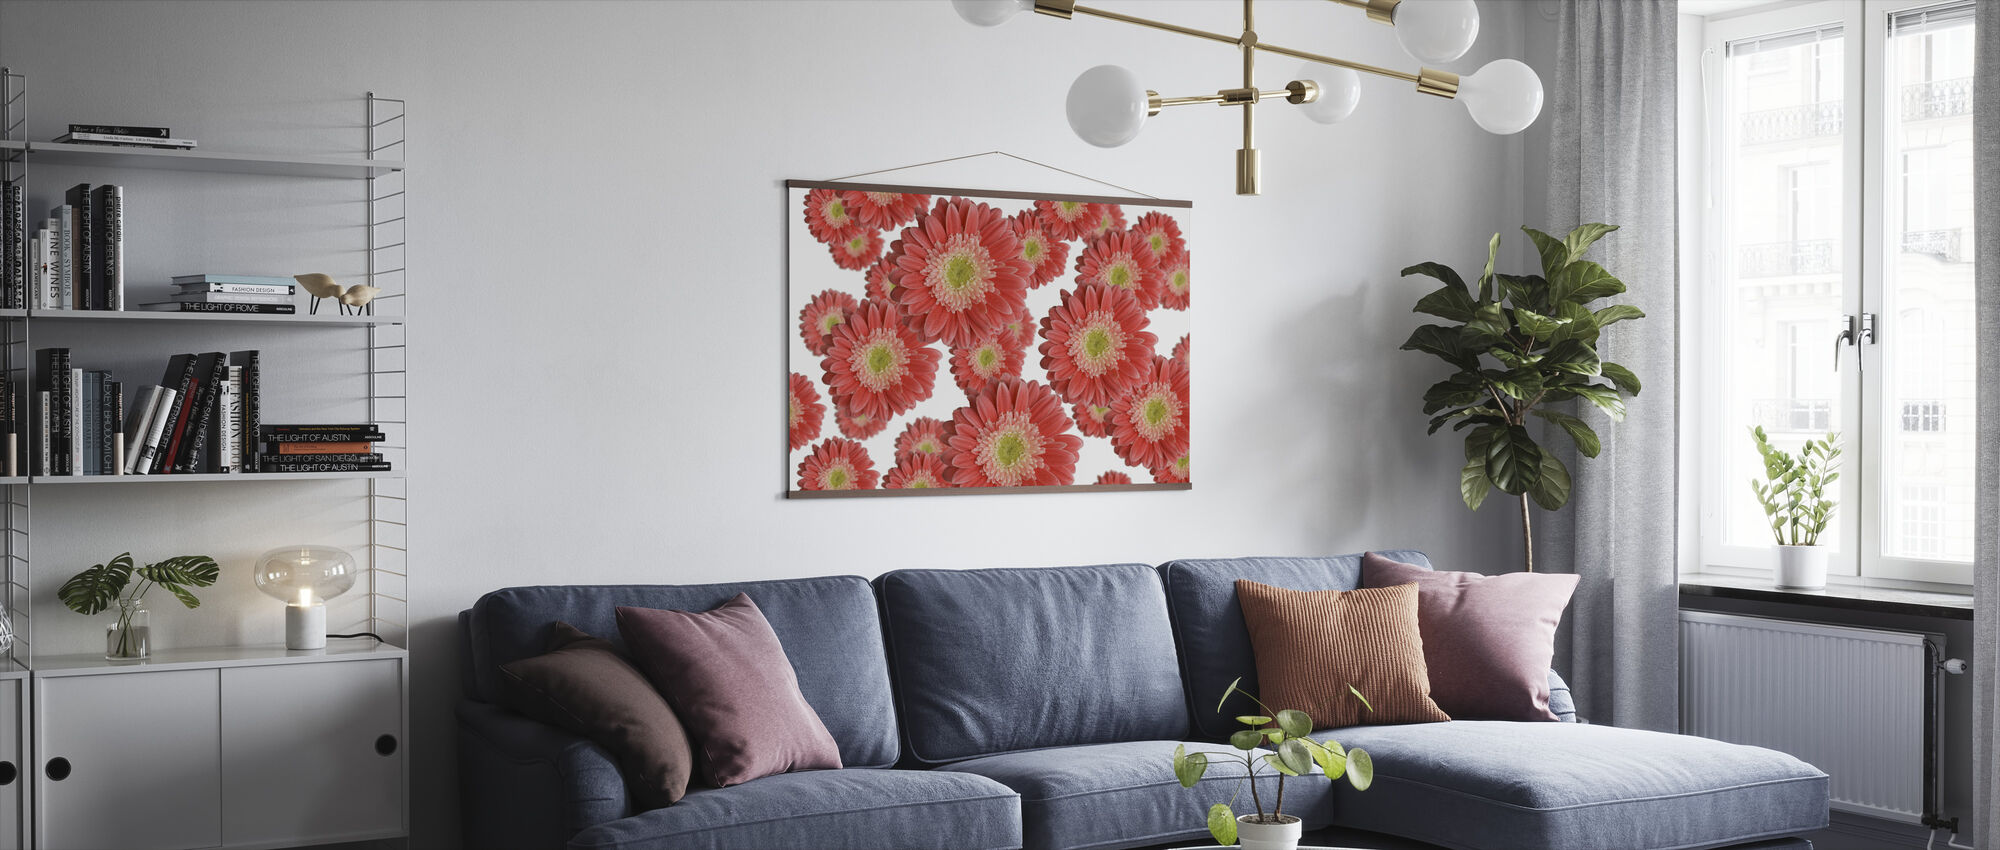 Hovering Flowers - Poster - Living Room